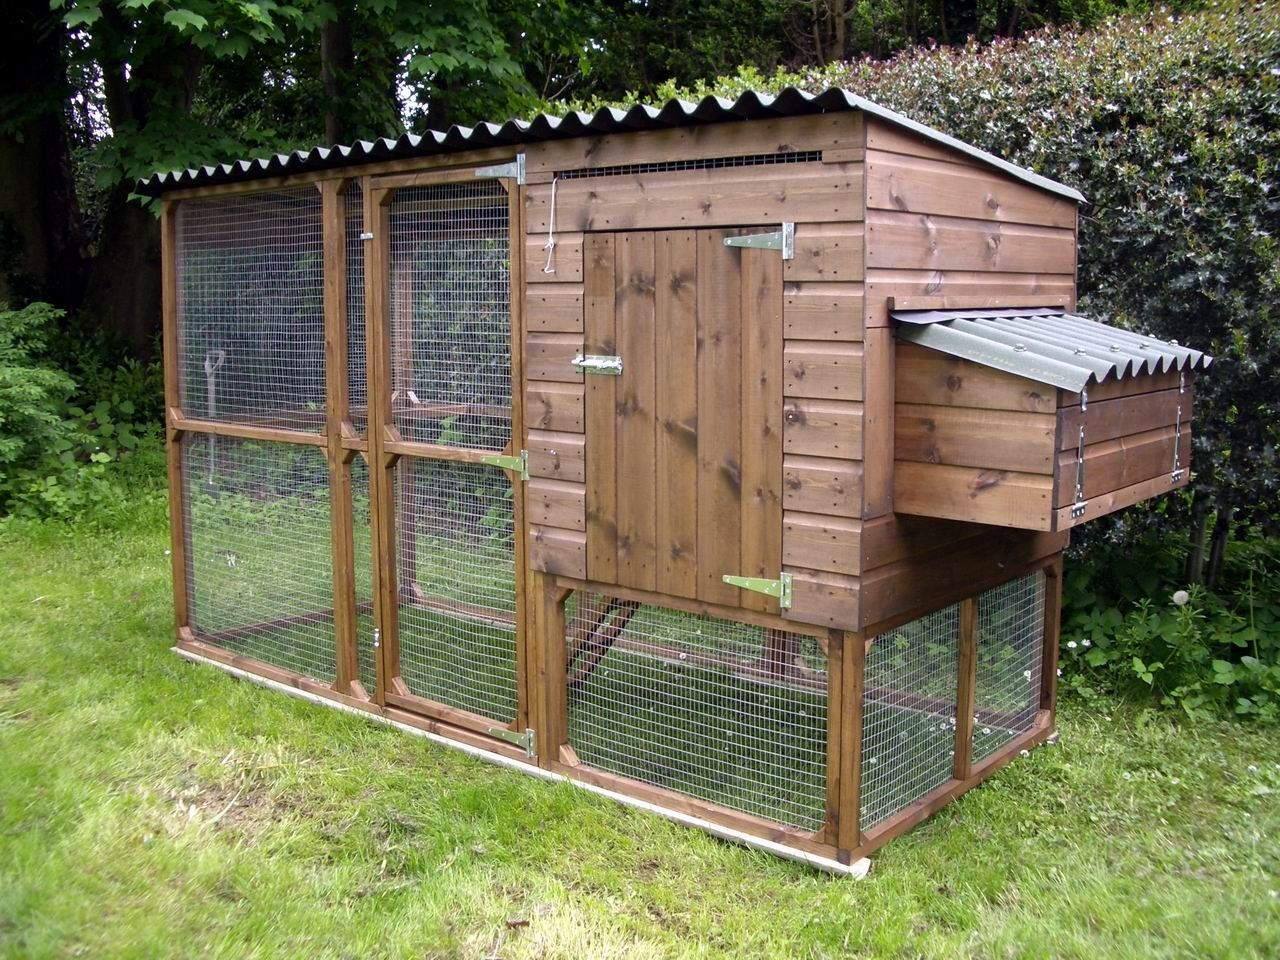 Pin by amanda alonzo on home ideas pinterest coops for Chicken coop size for 6 chickens